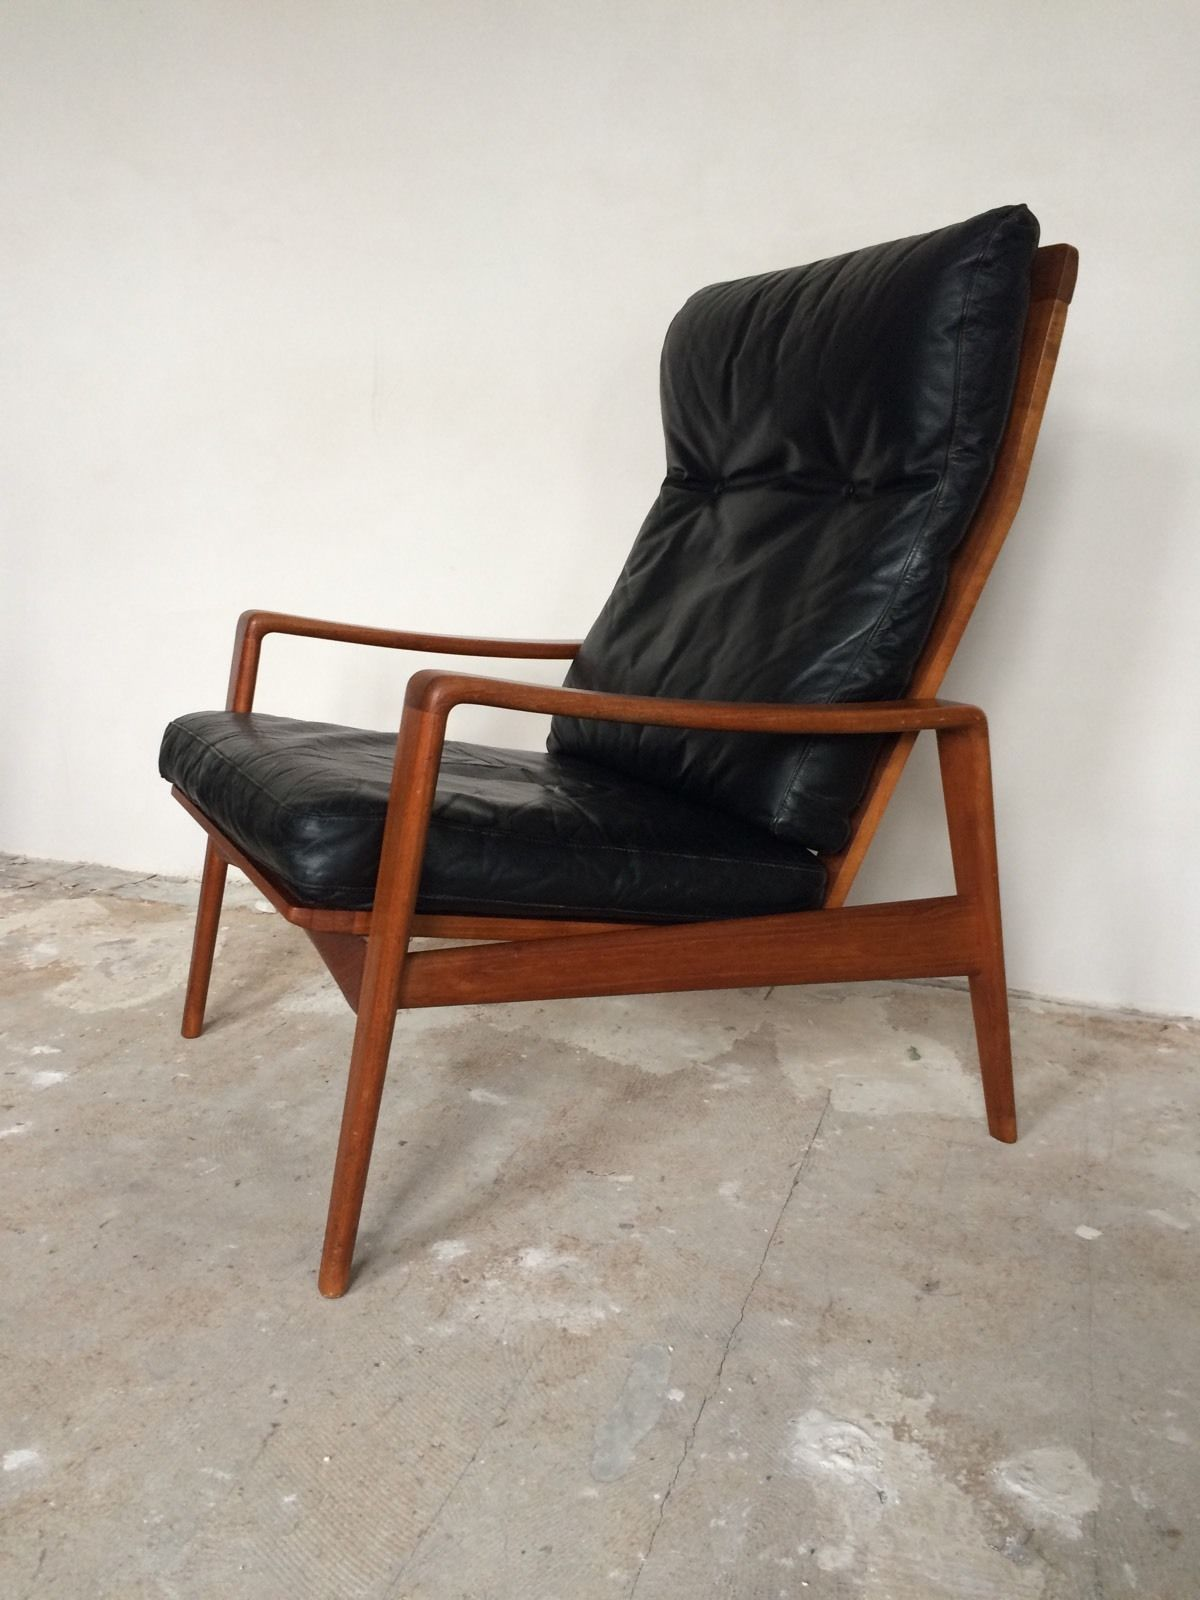 arne wahl iversen komfort lounge chair teak 60s danish design leder sessel 60er m bel zuhause. Black Bedroom Furniture Sets. Home Design Ideas